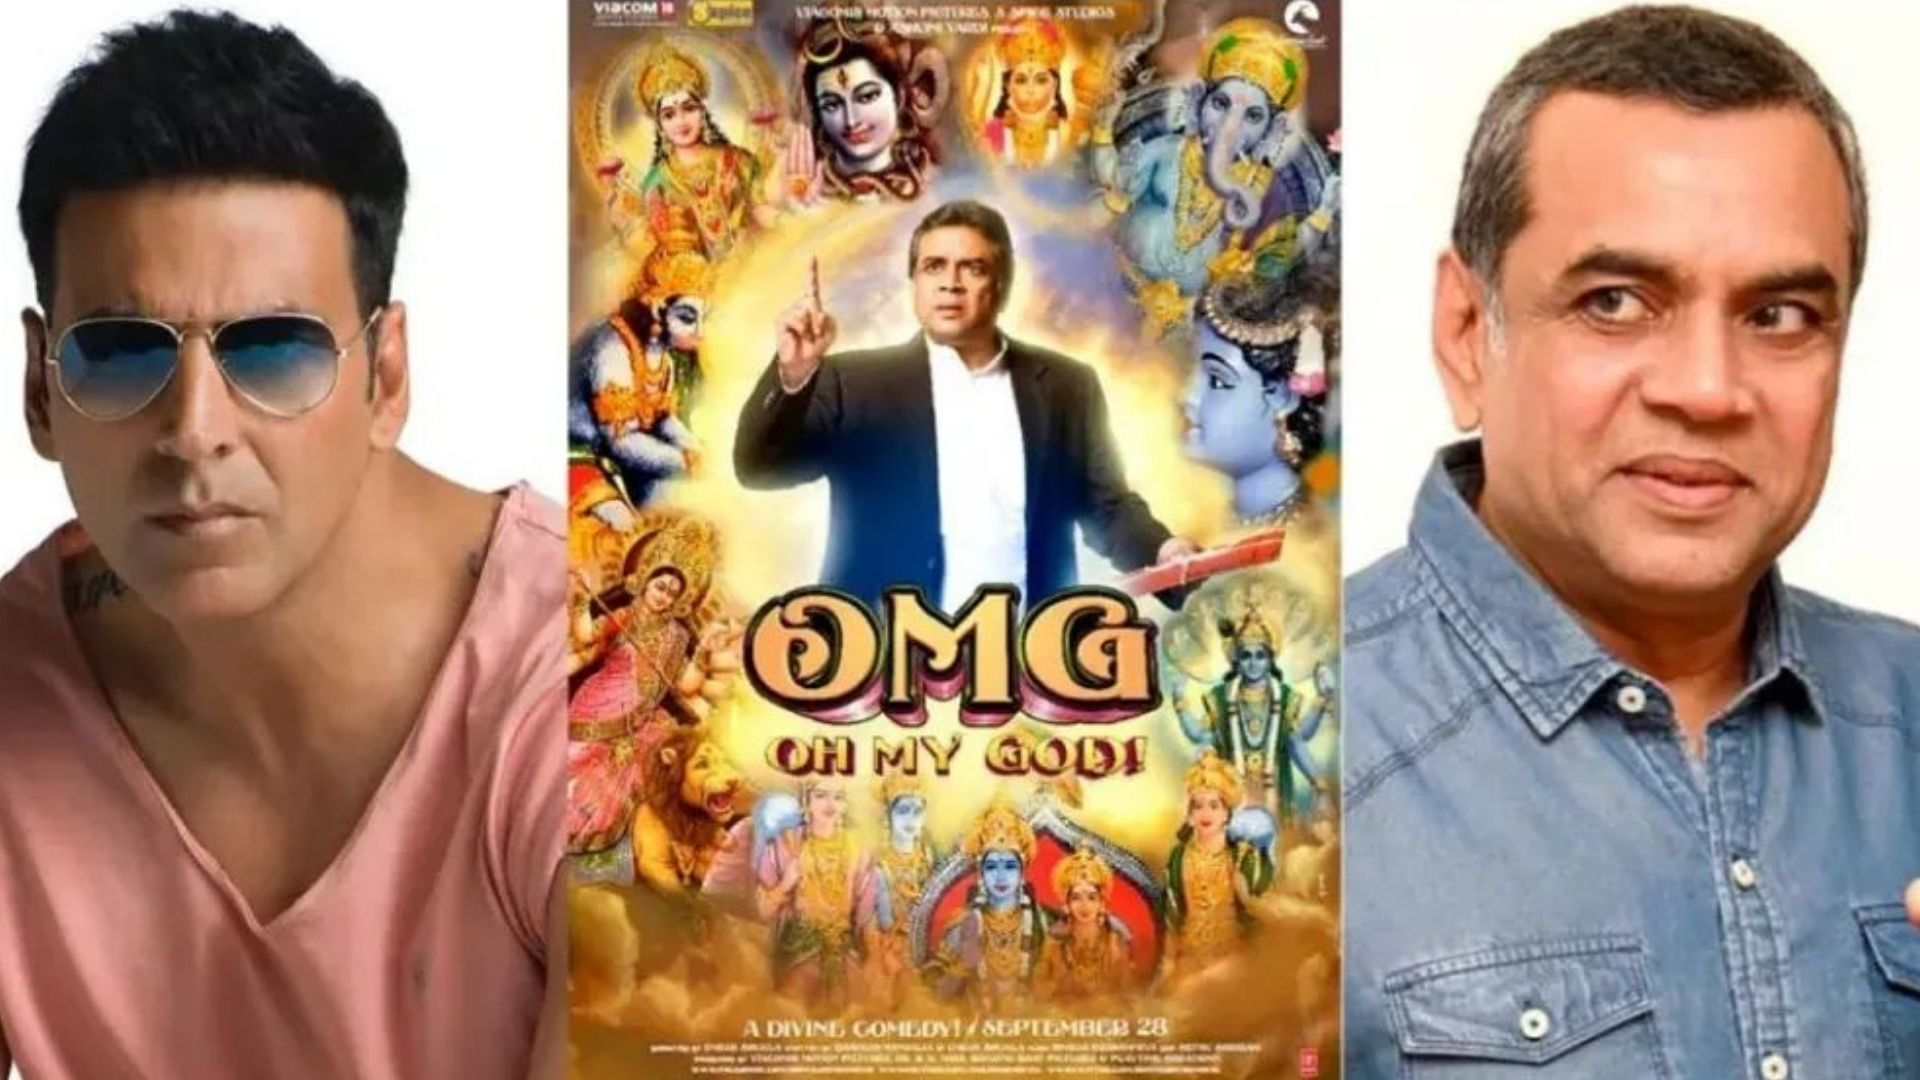 Oh My God 2: Paresh Rawal Will NOT Share Screen Space With Akshay Kumar For THIS Reason; Yami Gautam, Pankaj Tripathi To Be Onboard For The Flick